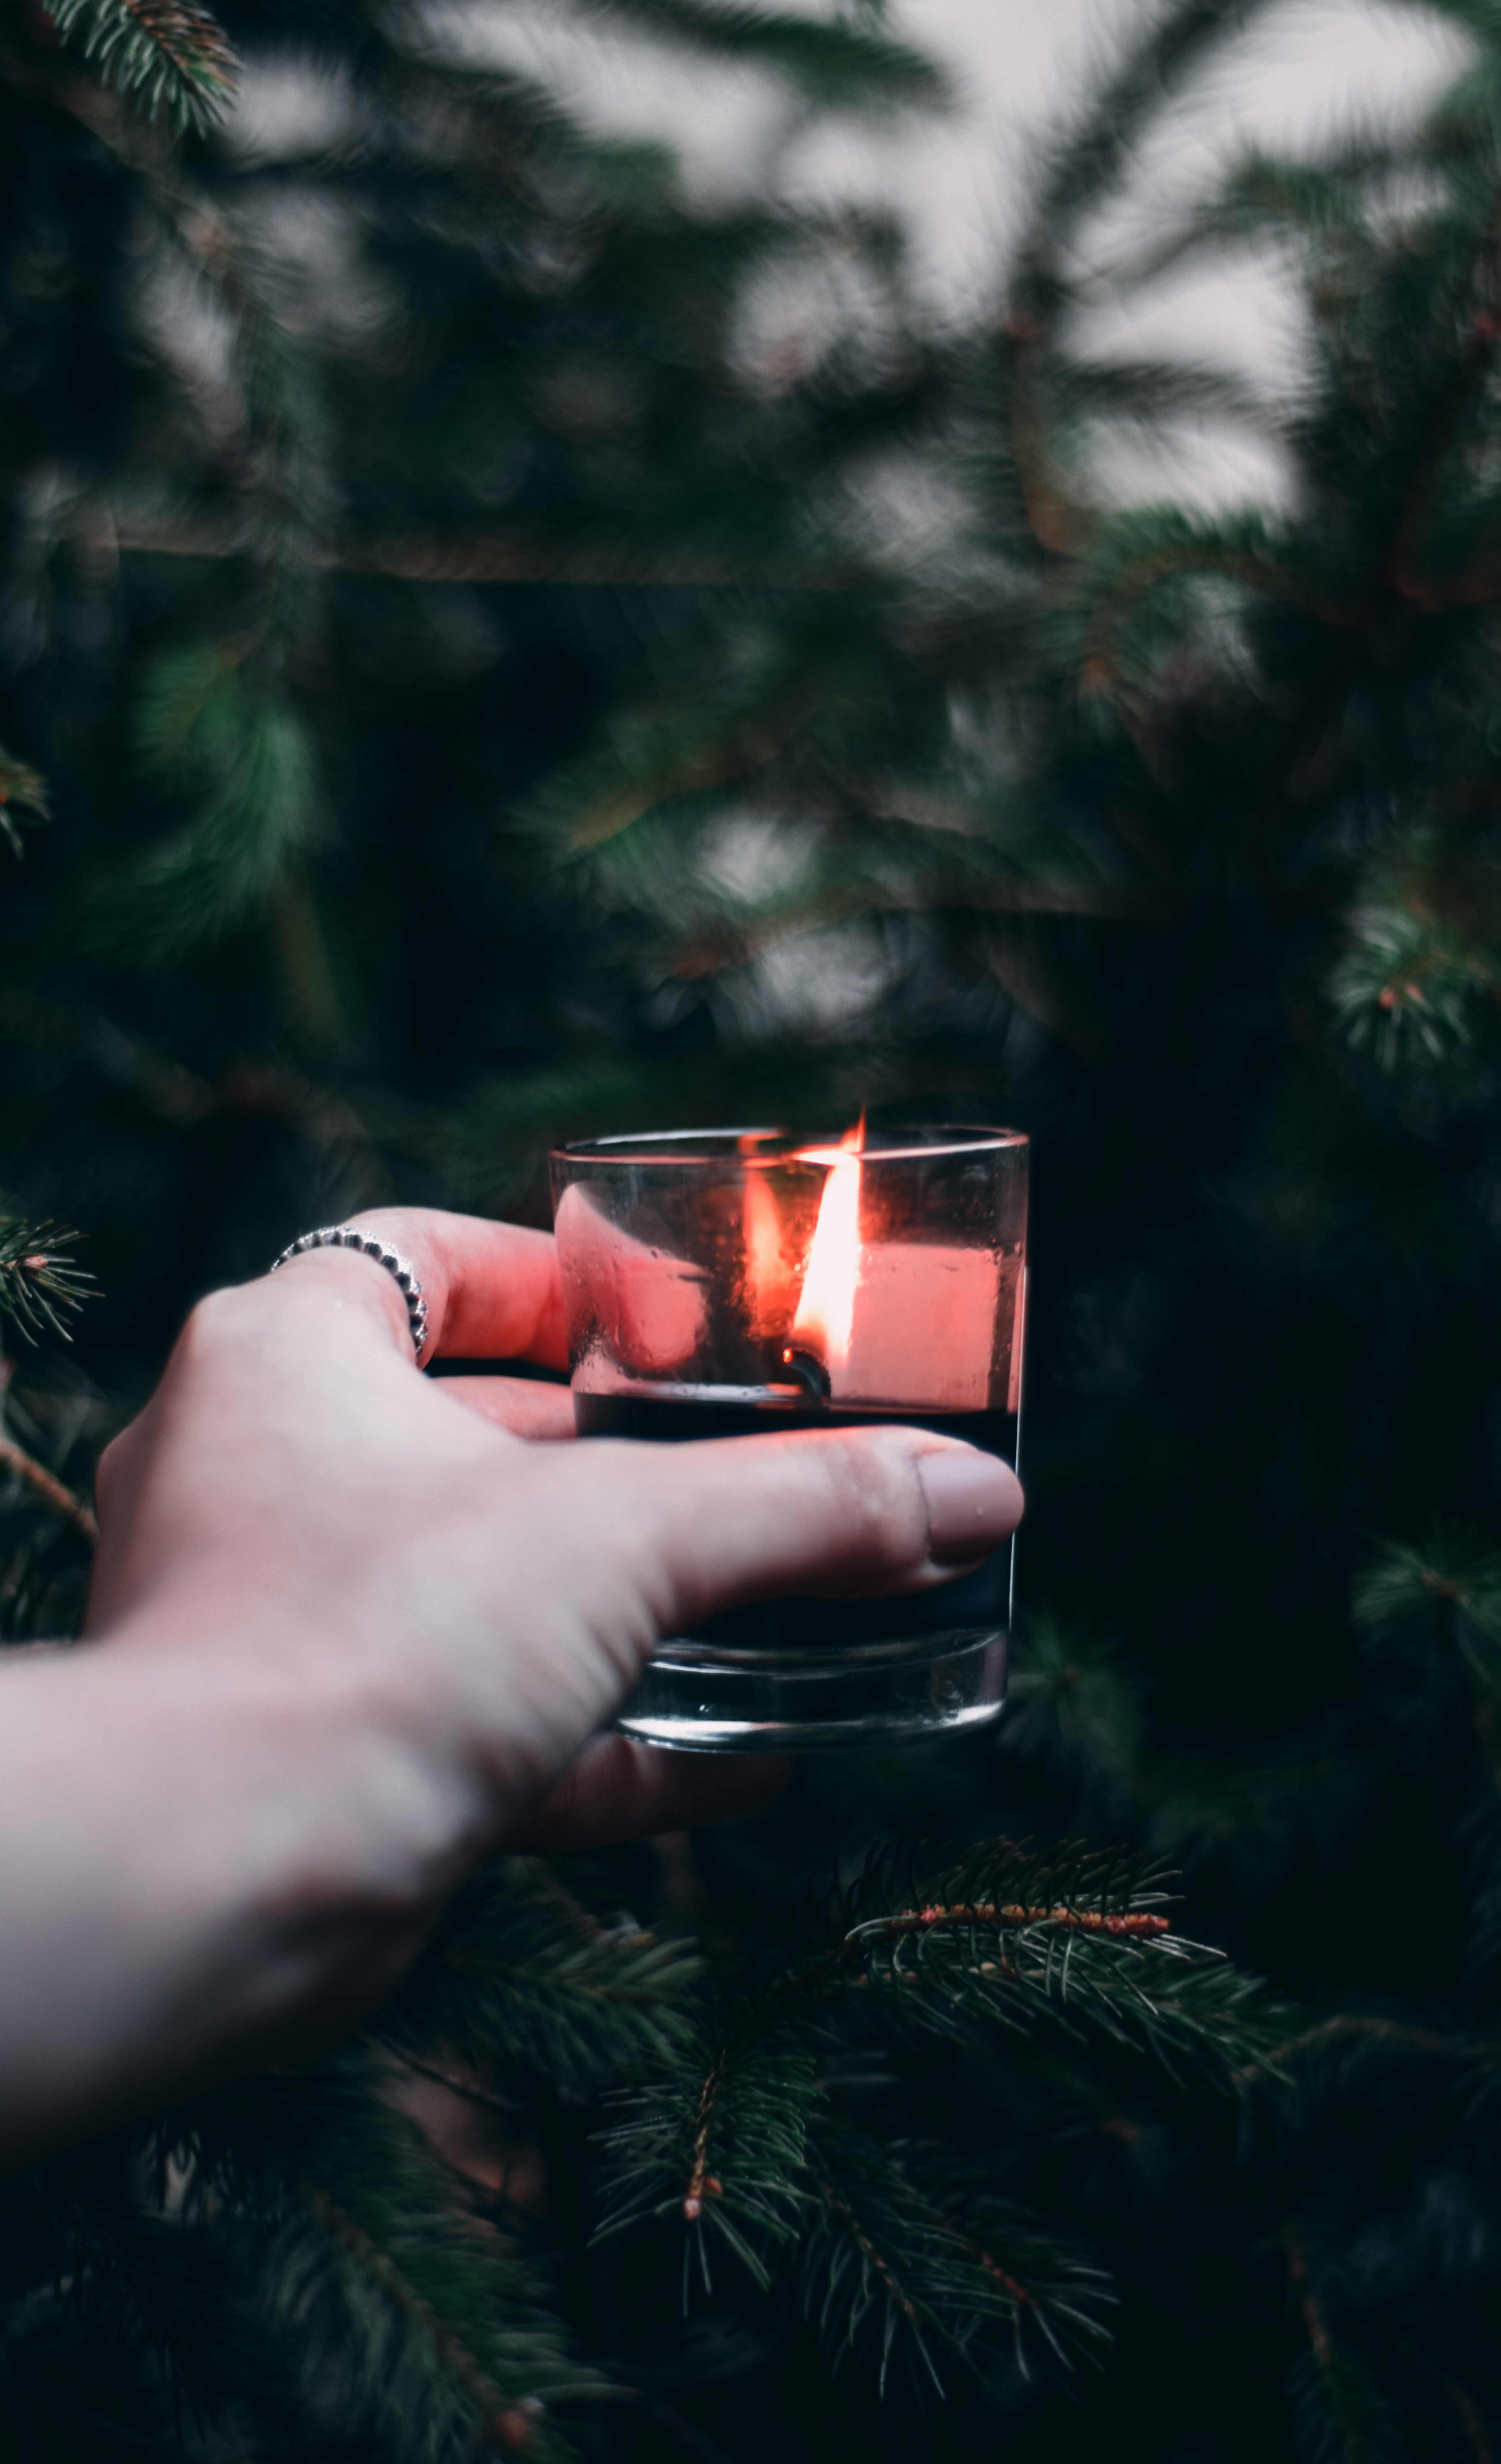 123320 download wallpaper Miscellaneous, Hand, Miscellanea, Branches, Christmas Tree, Candle screensavers and pictures for free